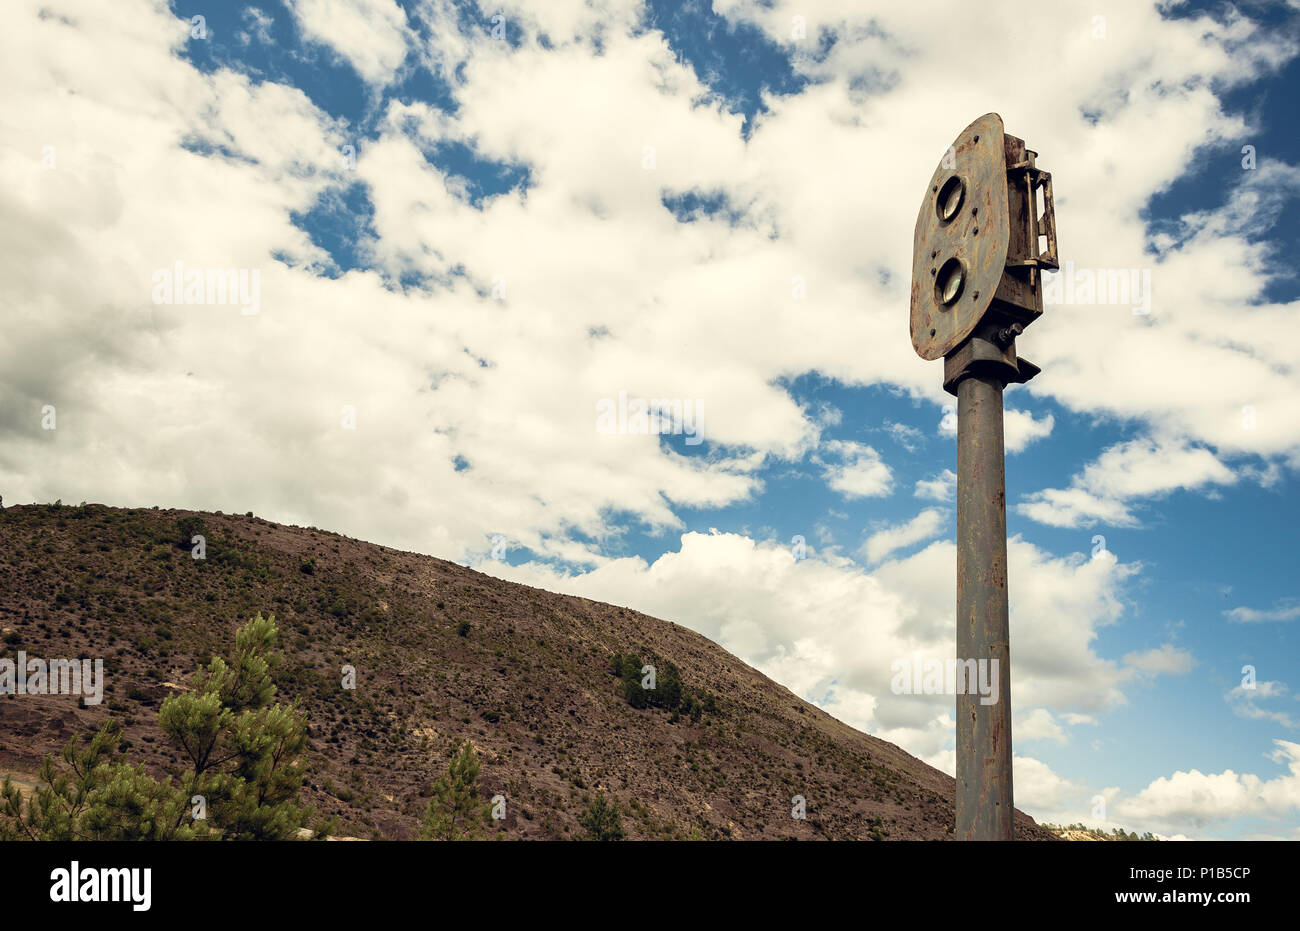 Old rusty train semaphore with sky and mountain background in the old station of Zaranda, Spain - Stock Image